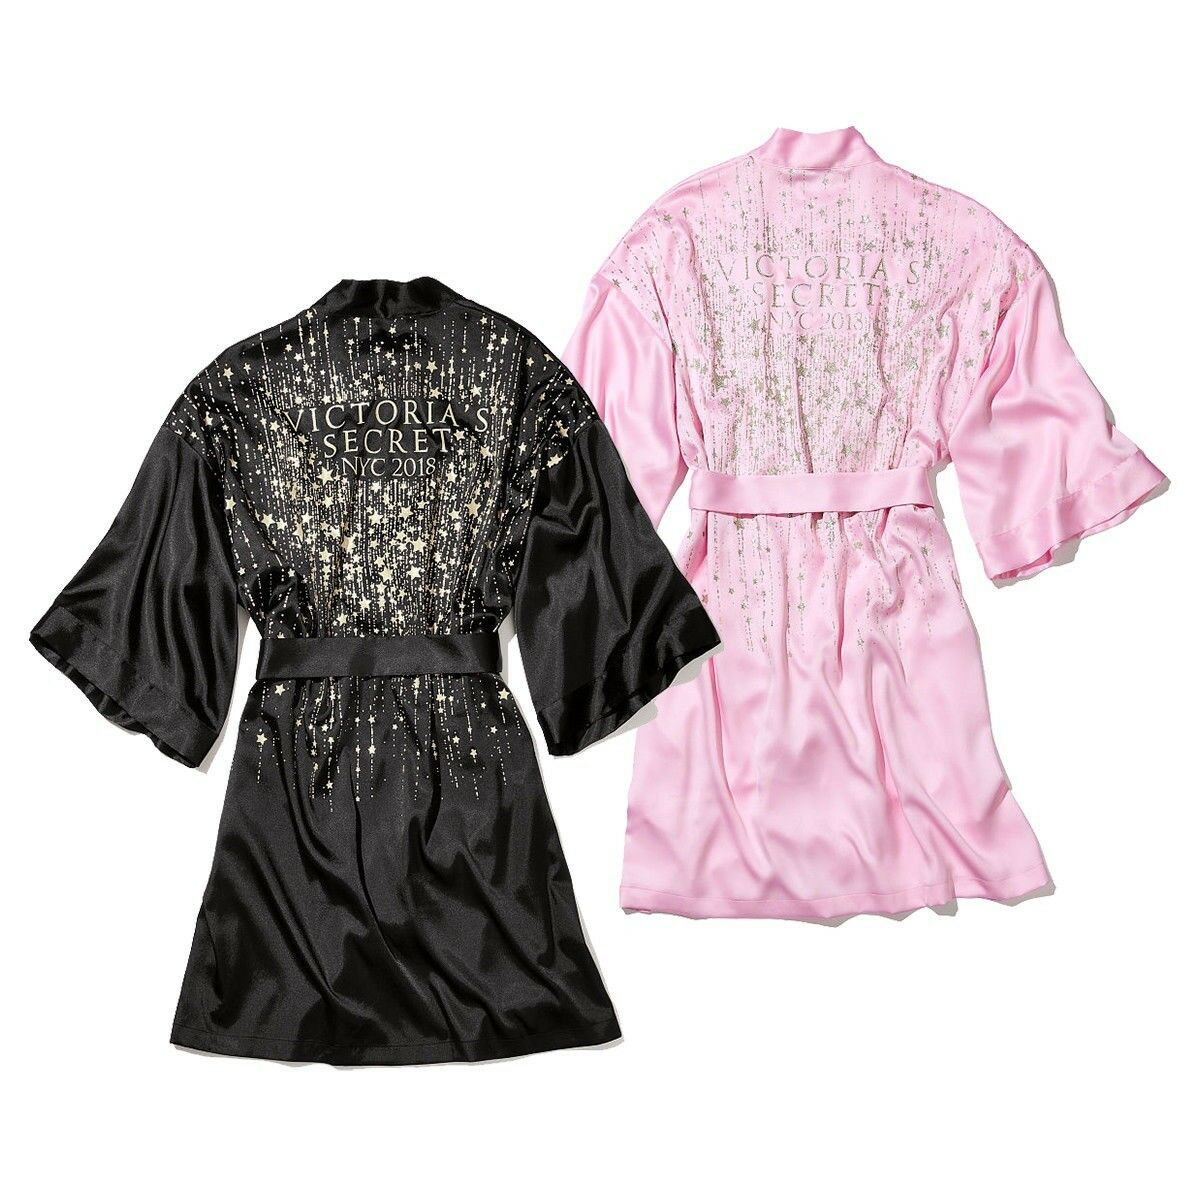 NEW Victoria's Secret New York 2018 Fashion Show Robe Limited Edition Great Gift